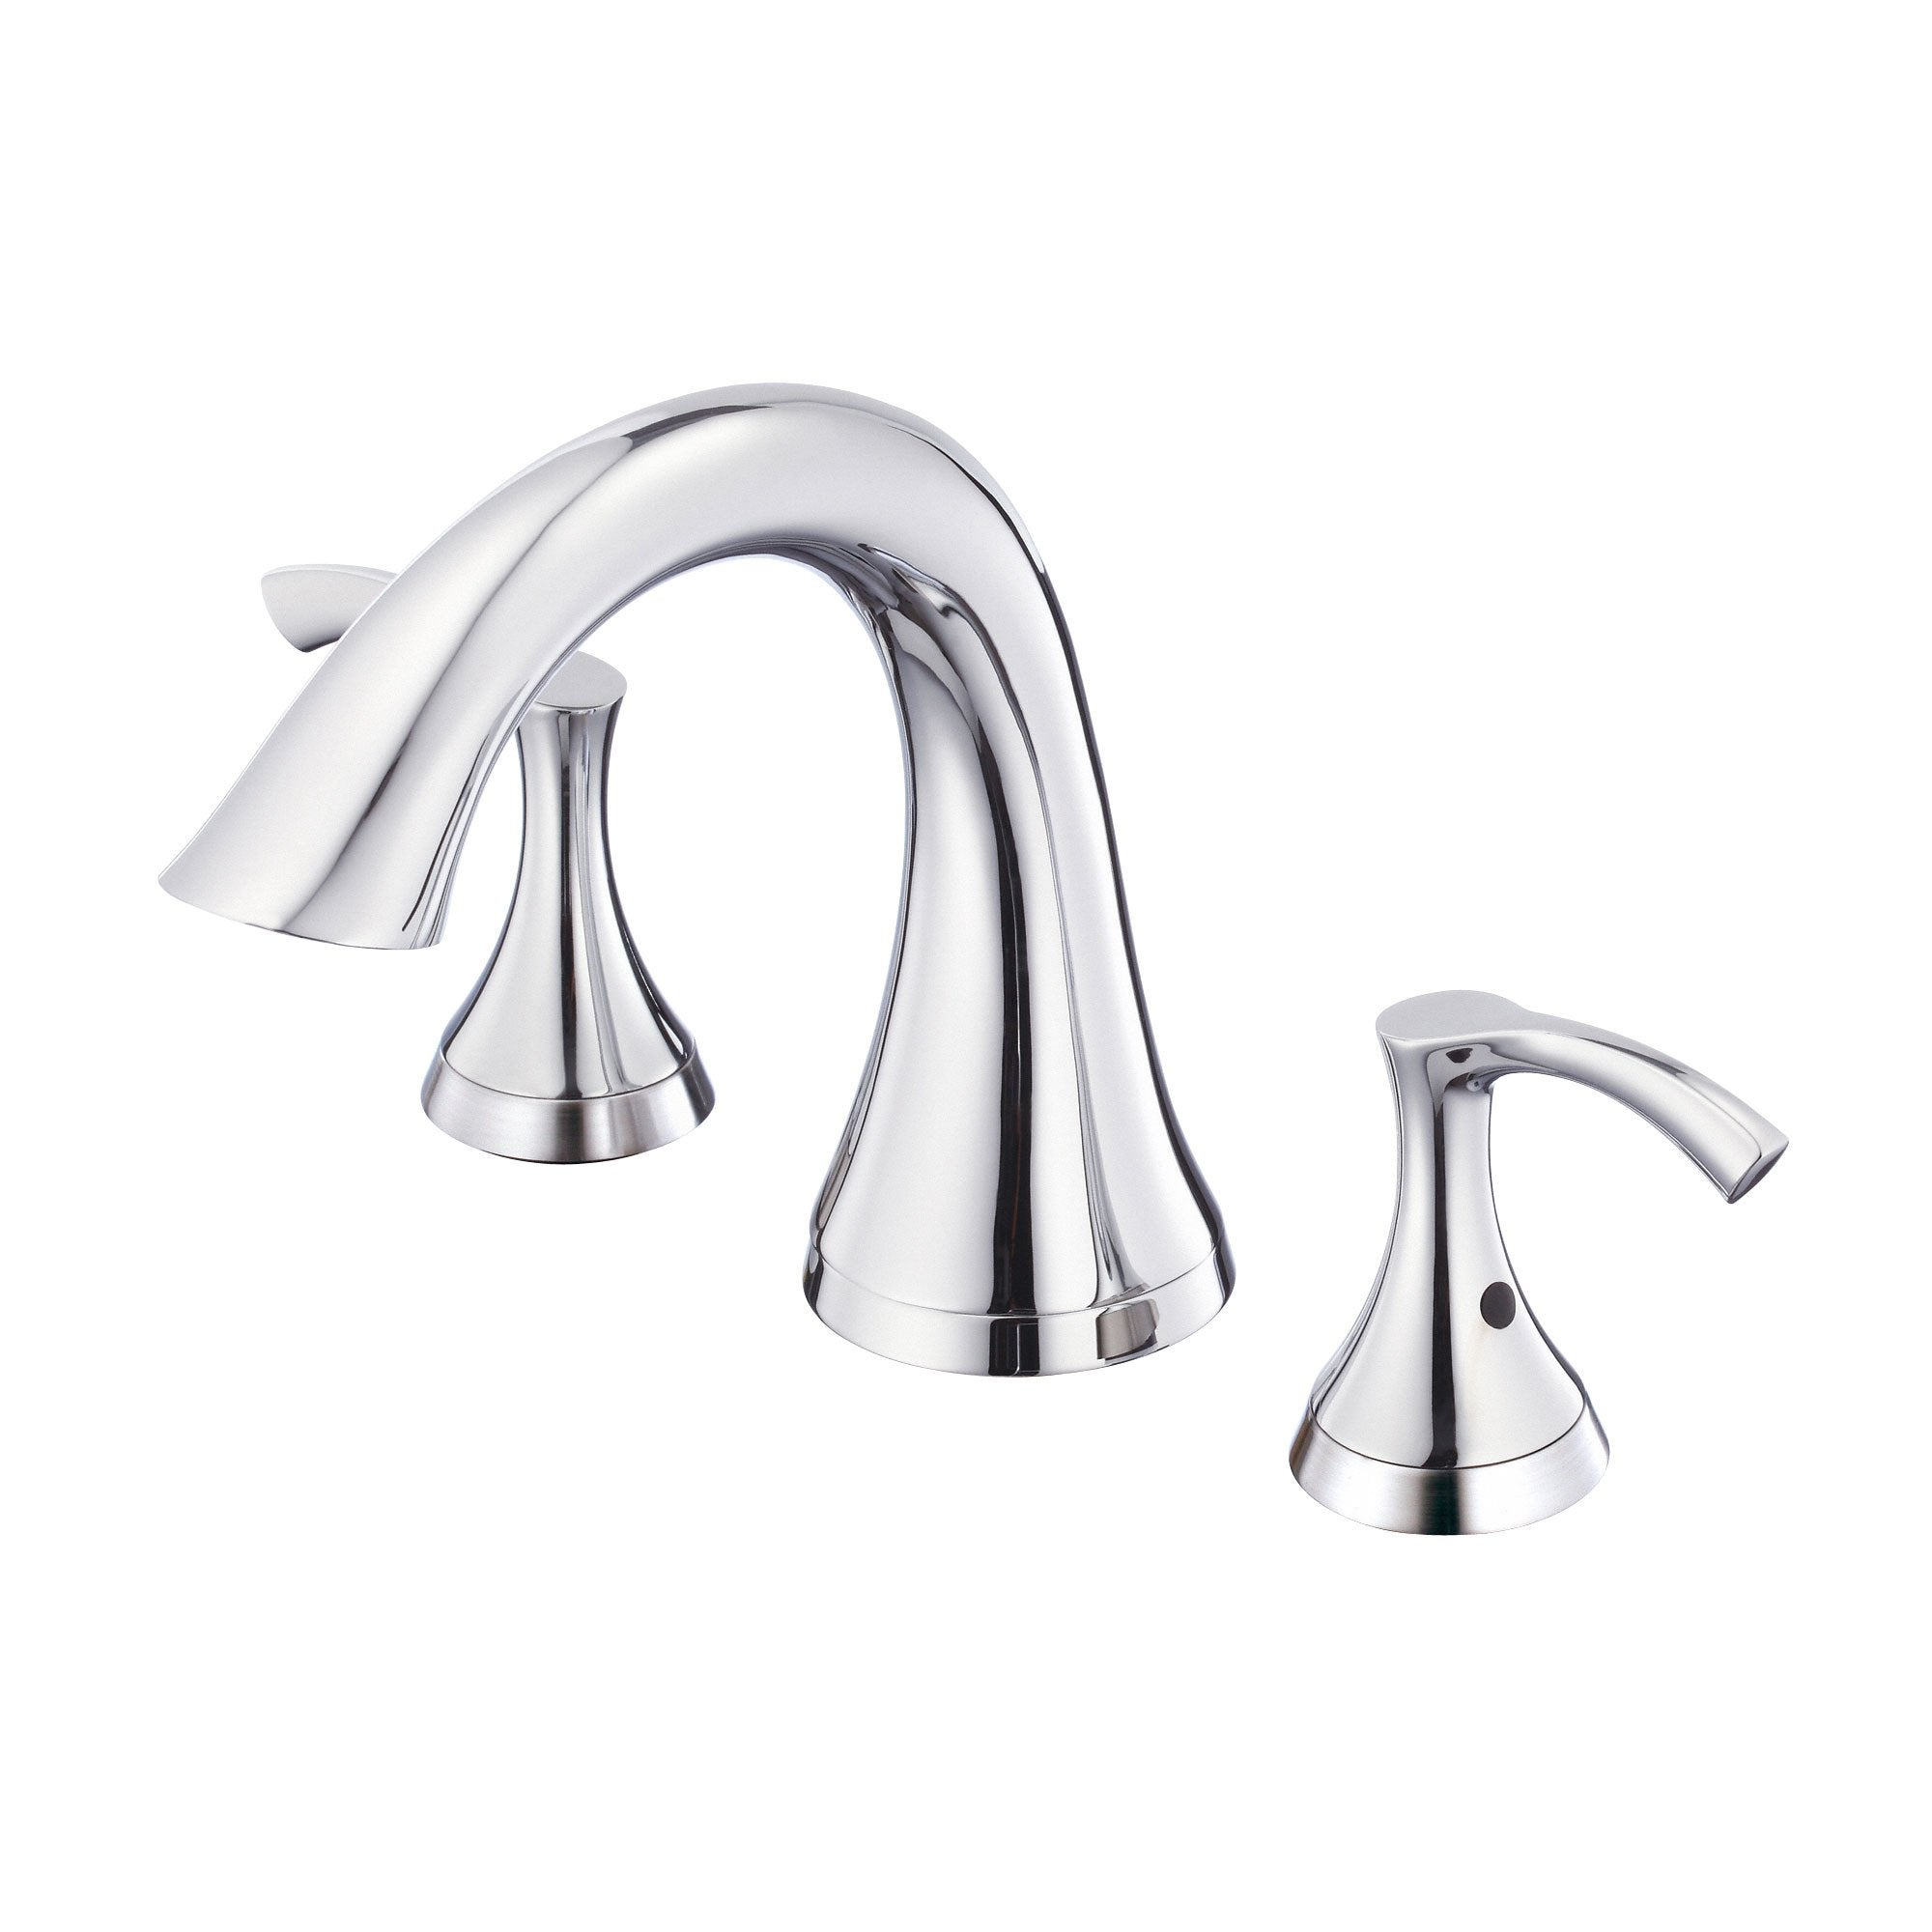 Danze Antioch Chrome Finish High Volume Roman tub Filler Faucet INCLUDES Rough-in Valve